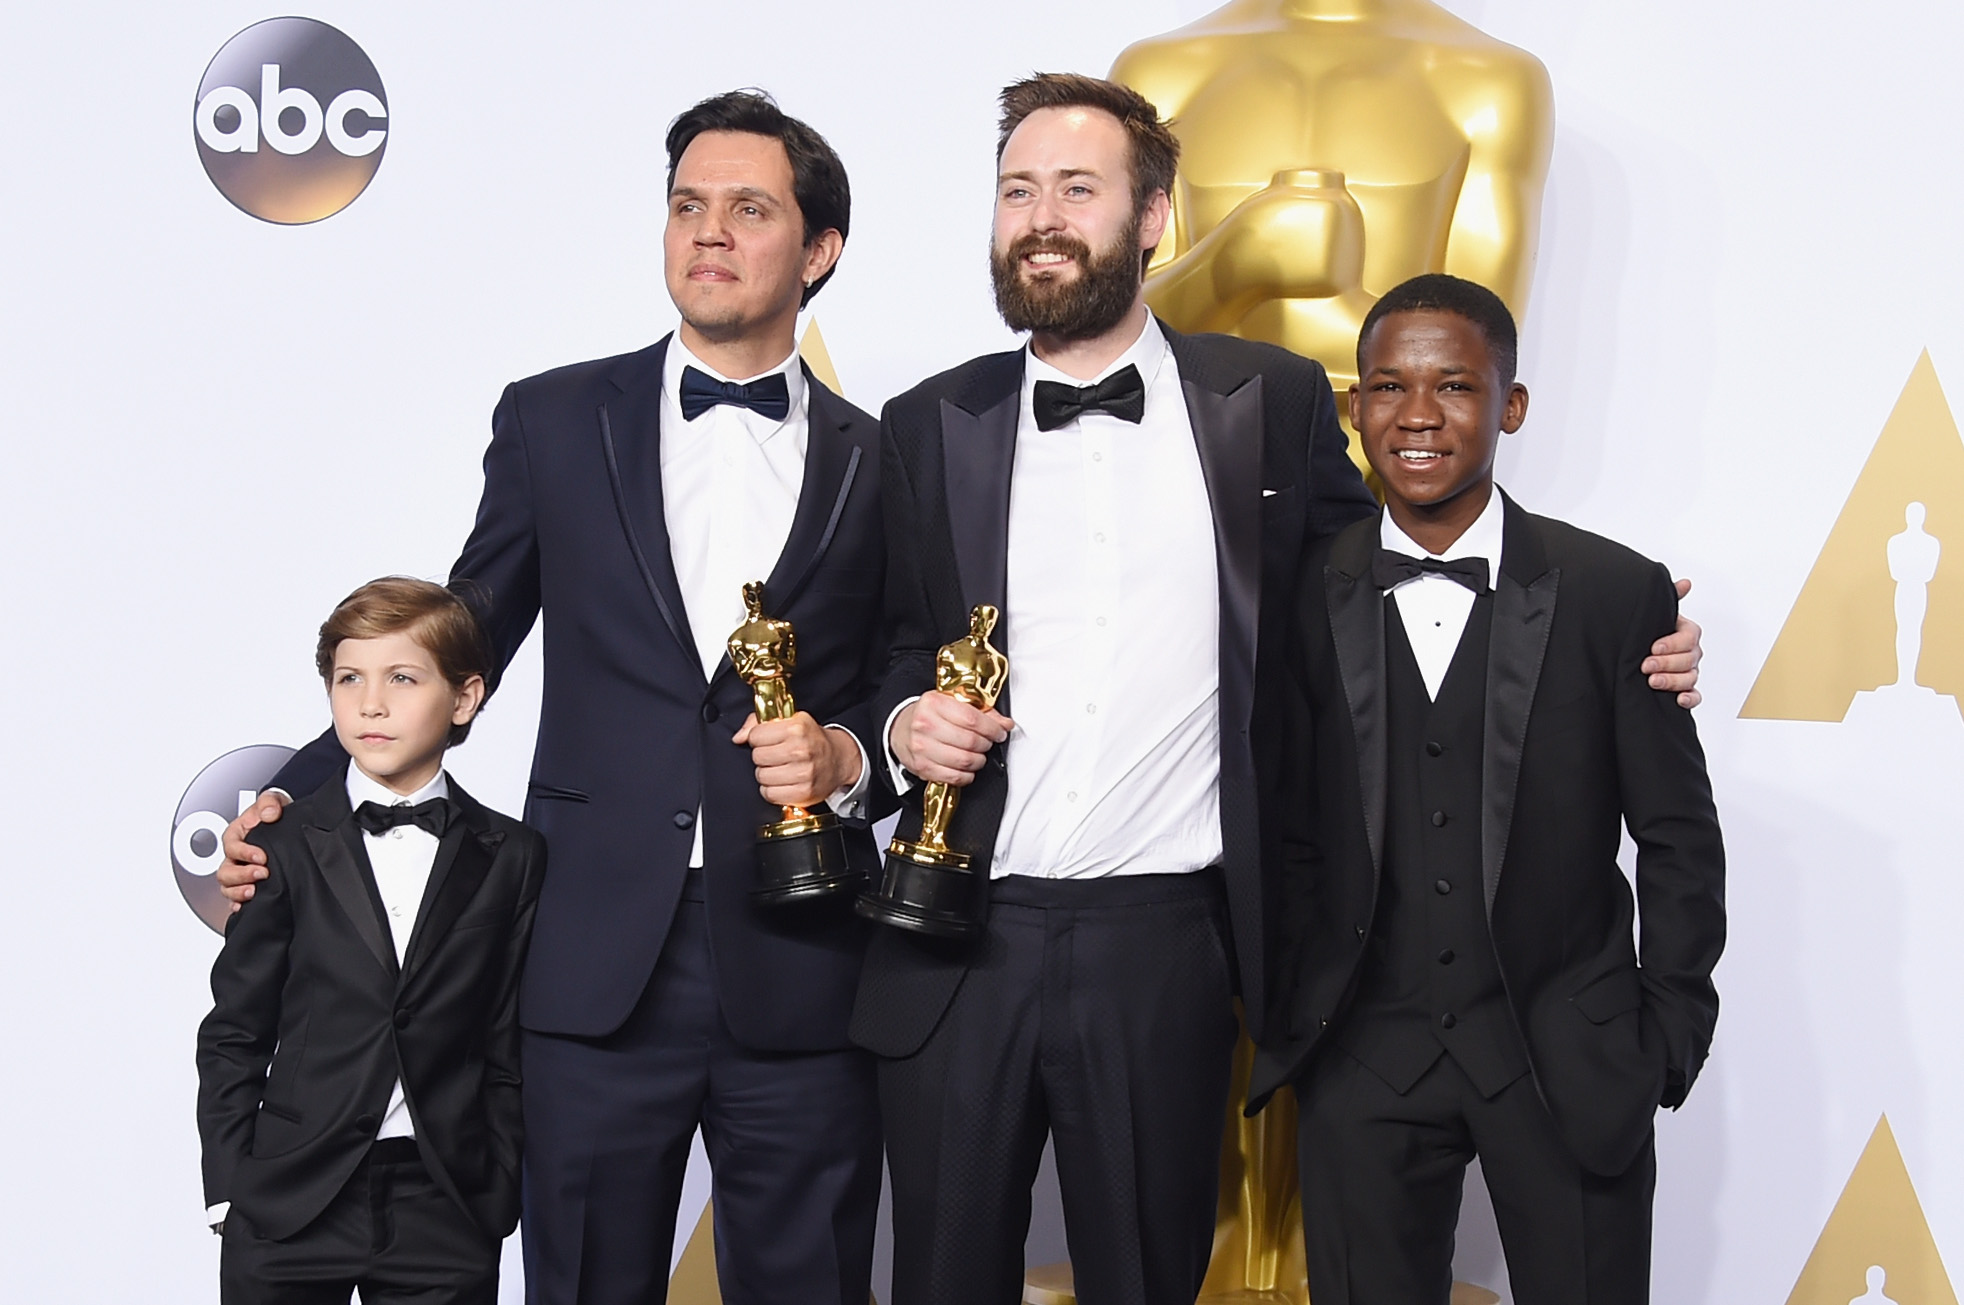 Oscar Jacob Tremblay, Shan Christopher Ogilvie, Benjamin Cleary and Abraham Attah